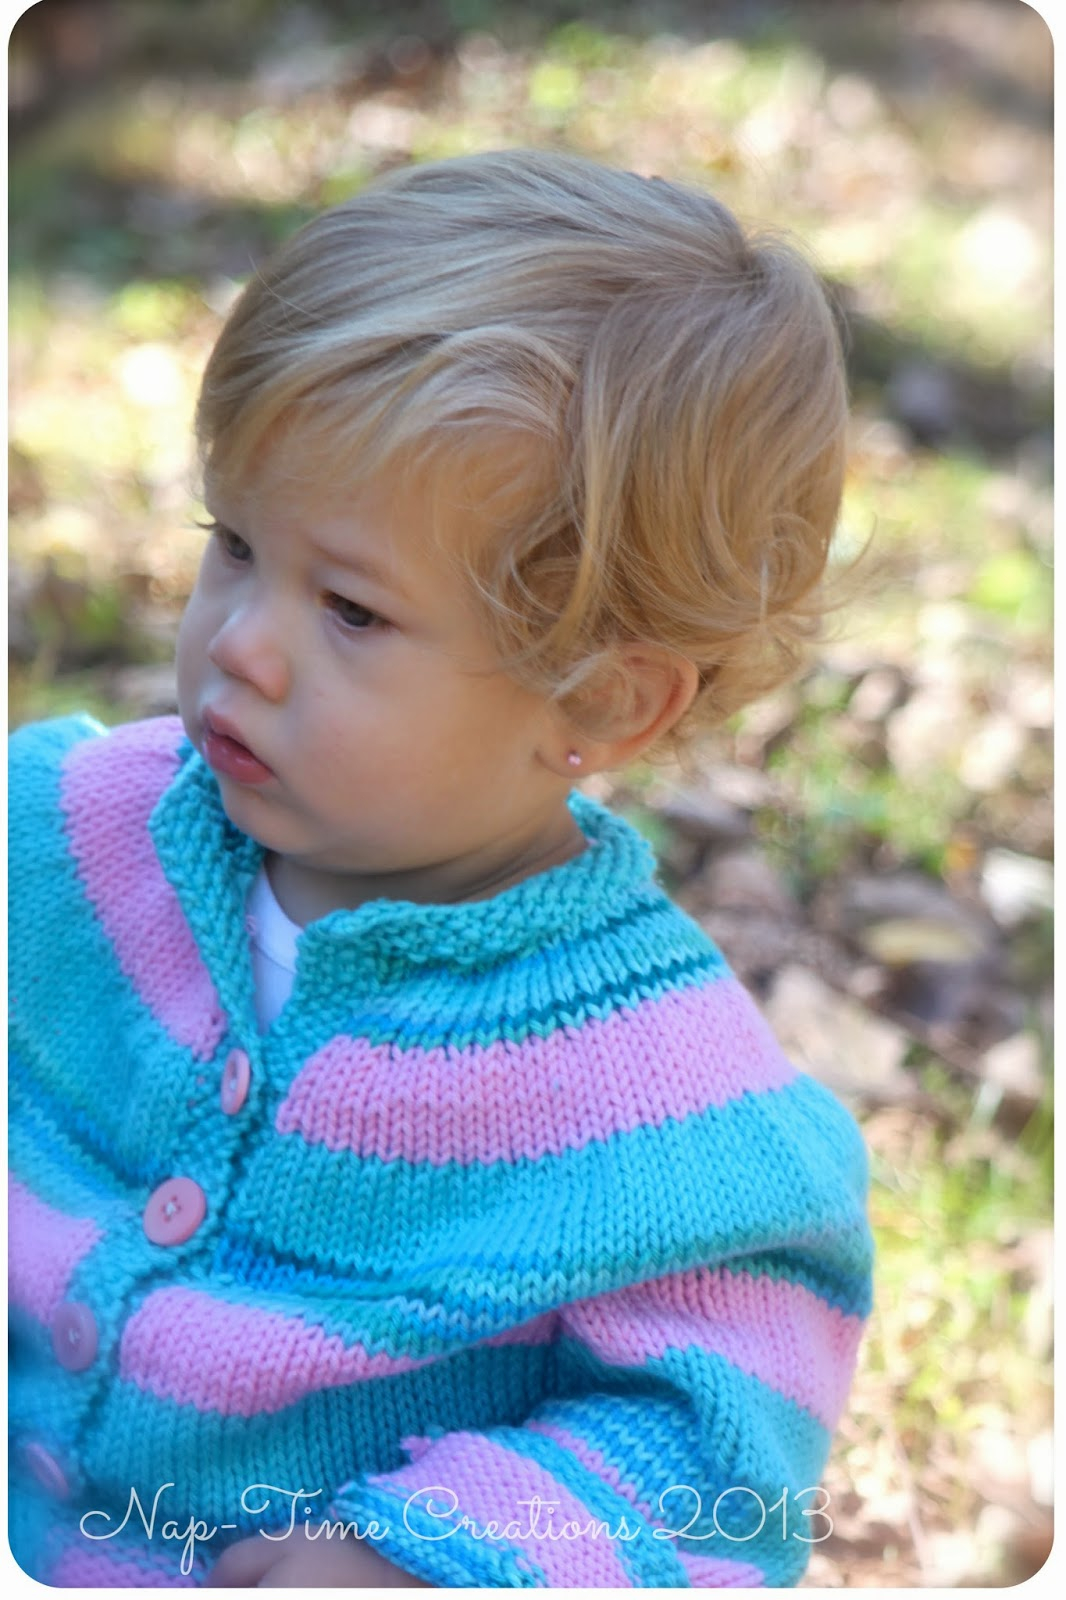 Knitting Patterns For Childrens Sweaters Free Ba Sweaters Free Knitting Patterns Life Sew Savory